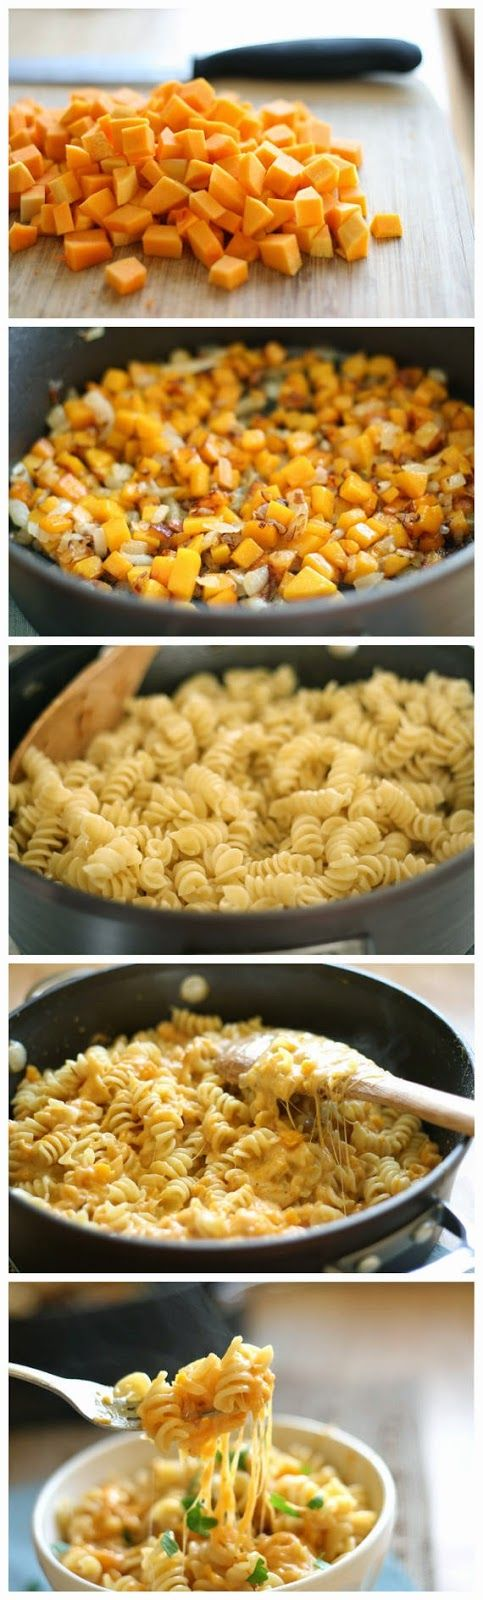 Stove top Butternut Squash Mac n' Cheese Recipe Ah-mazing! Even better as left overs :)